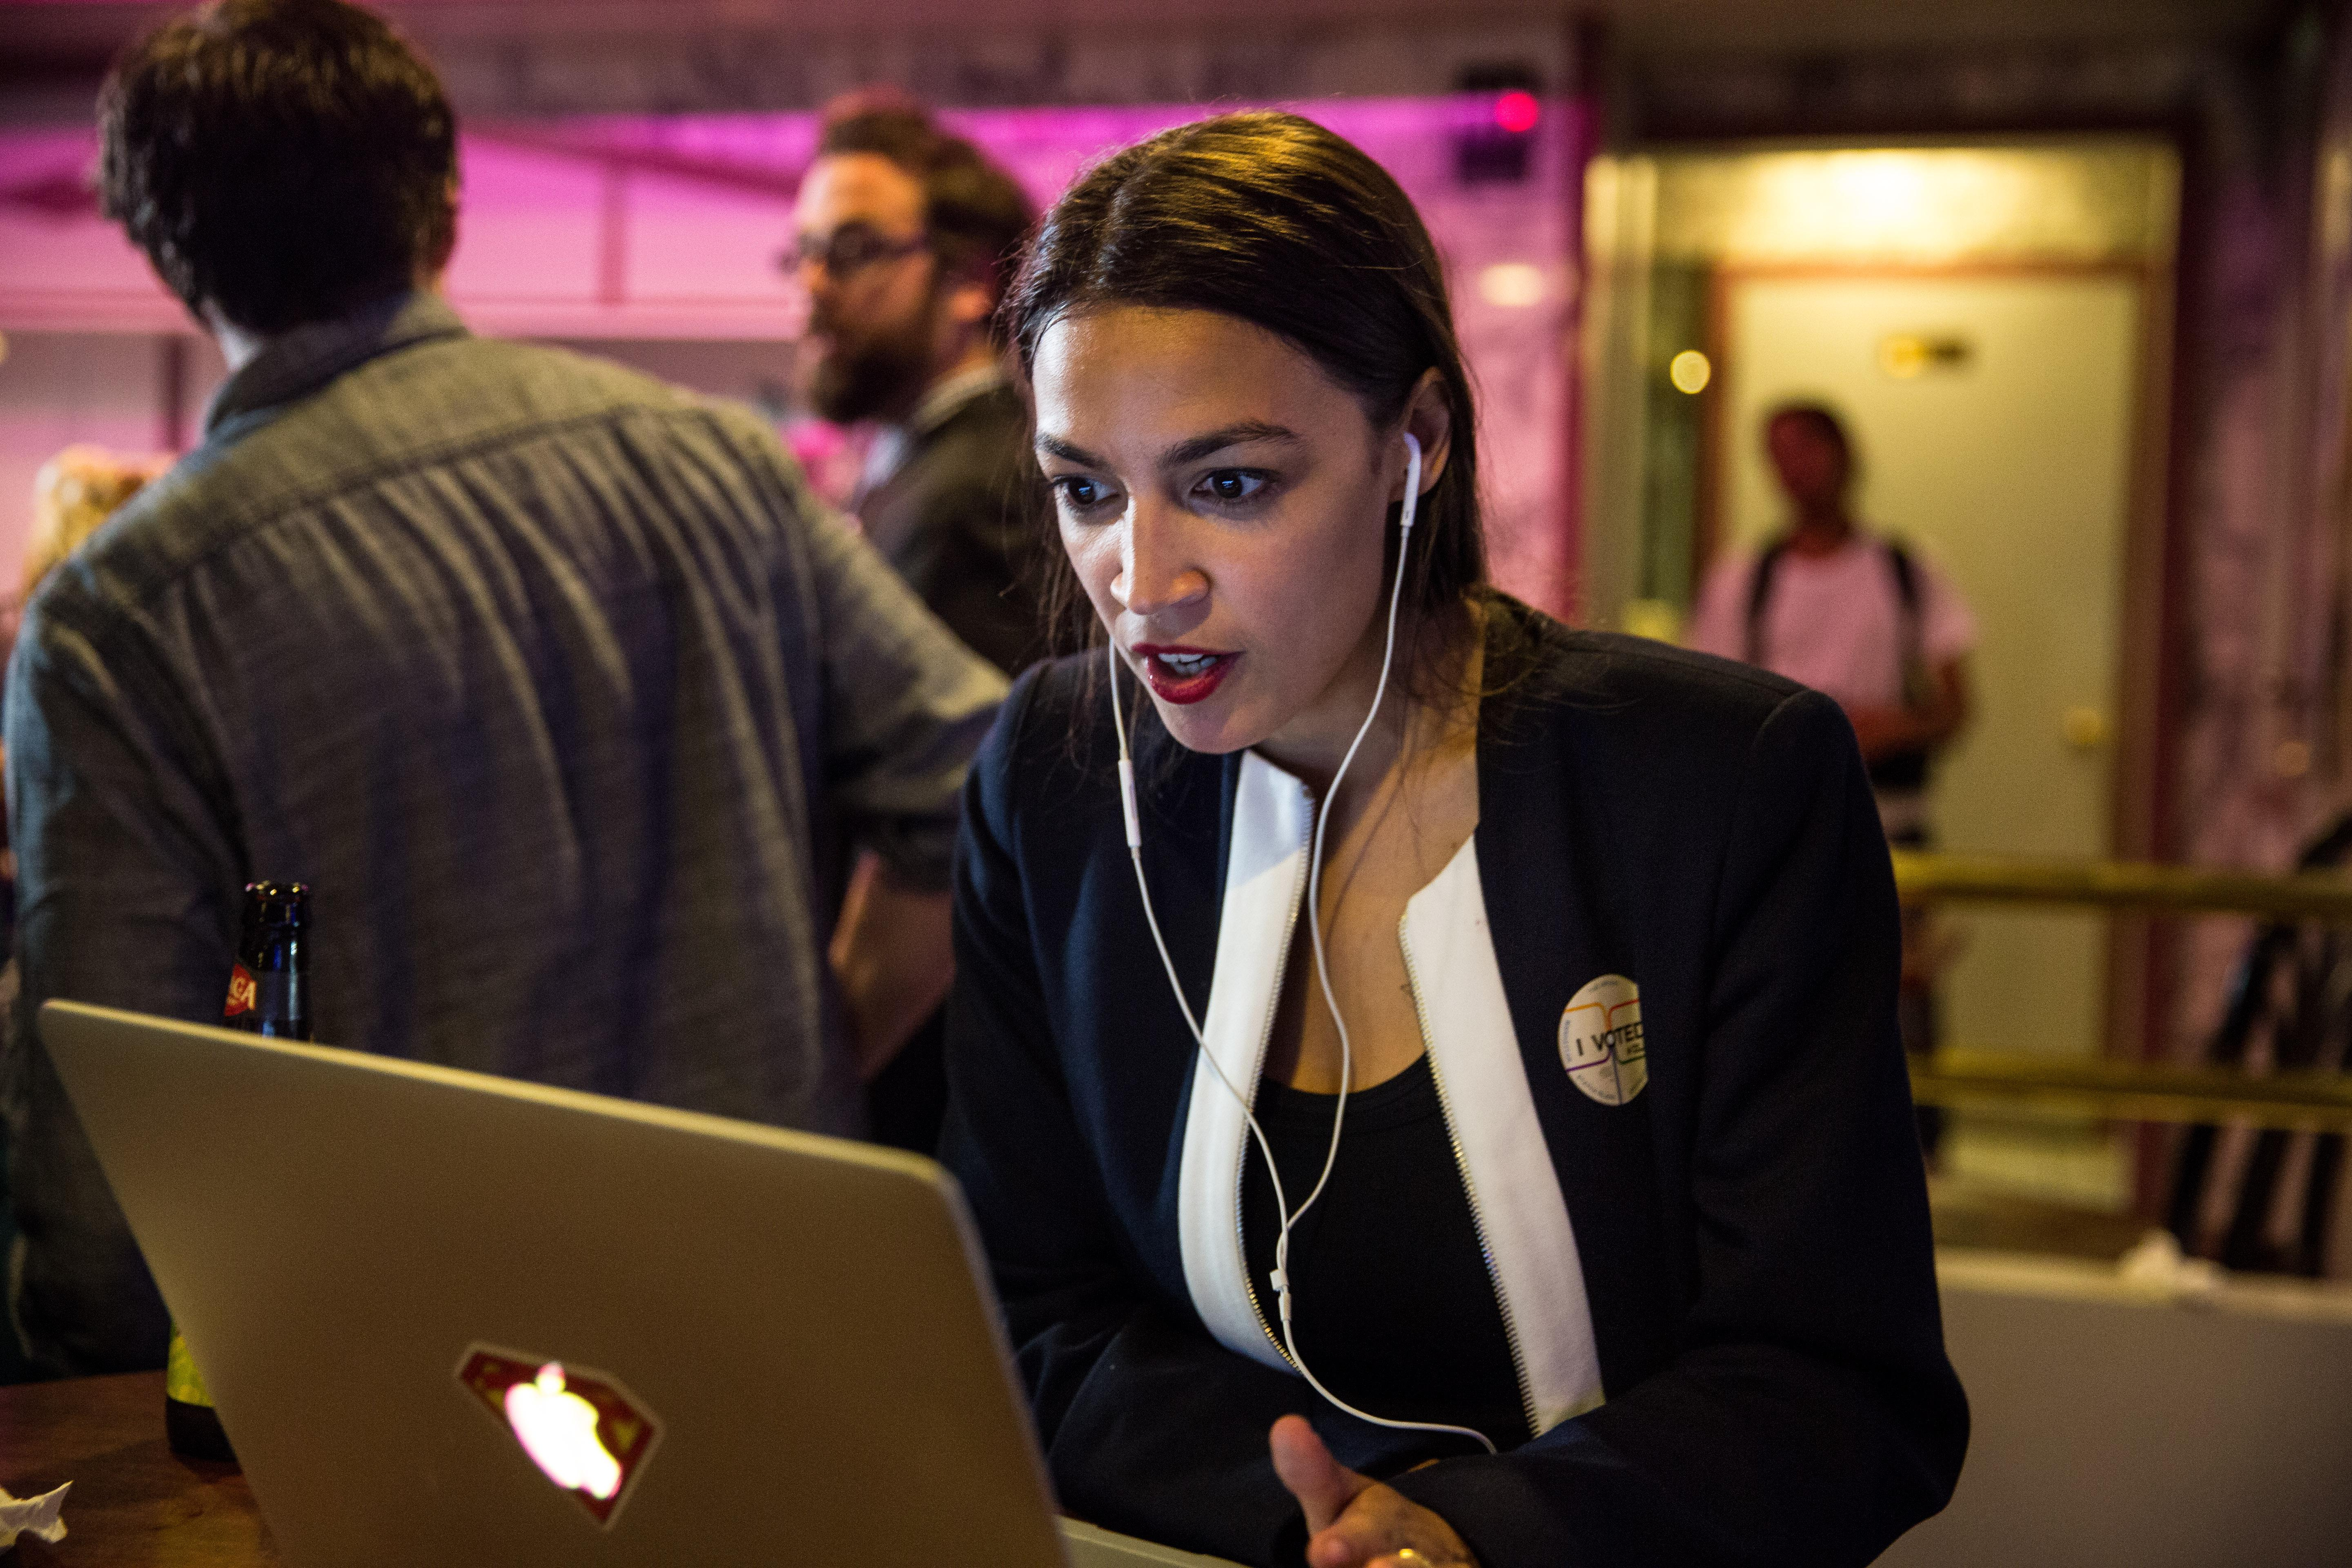 Alexandria Ocasio-Cortez celebrates  at her victory party in the Bronx.